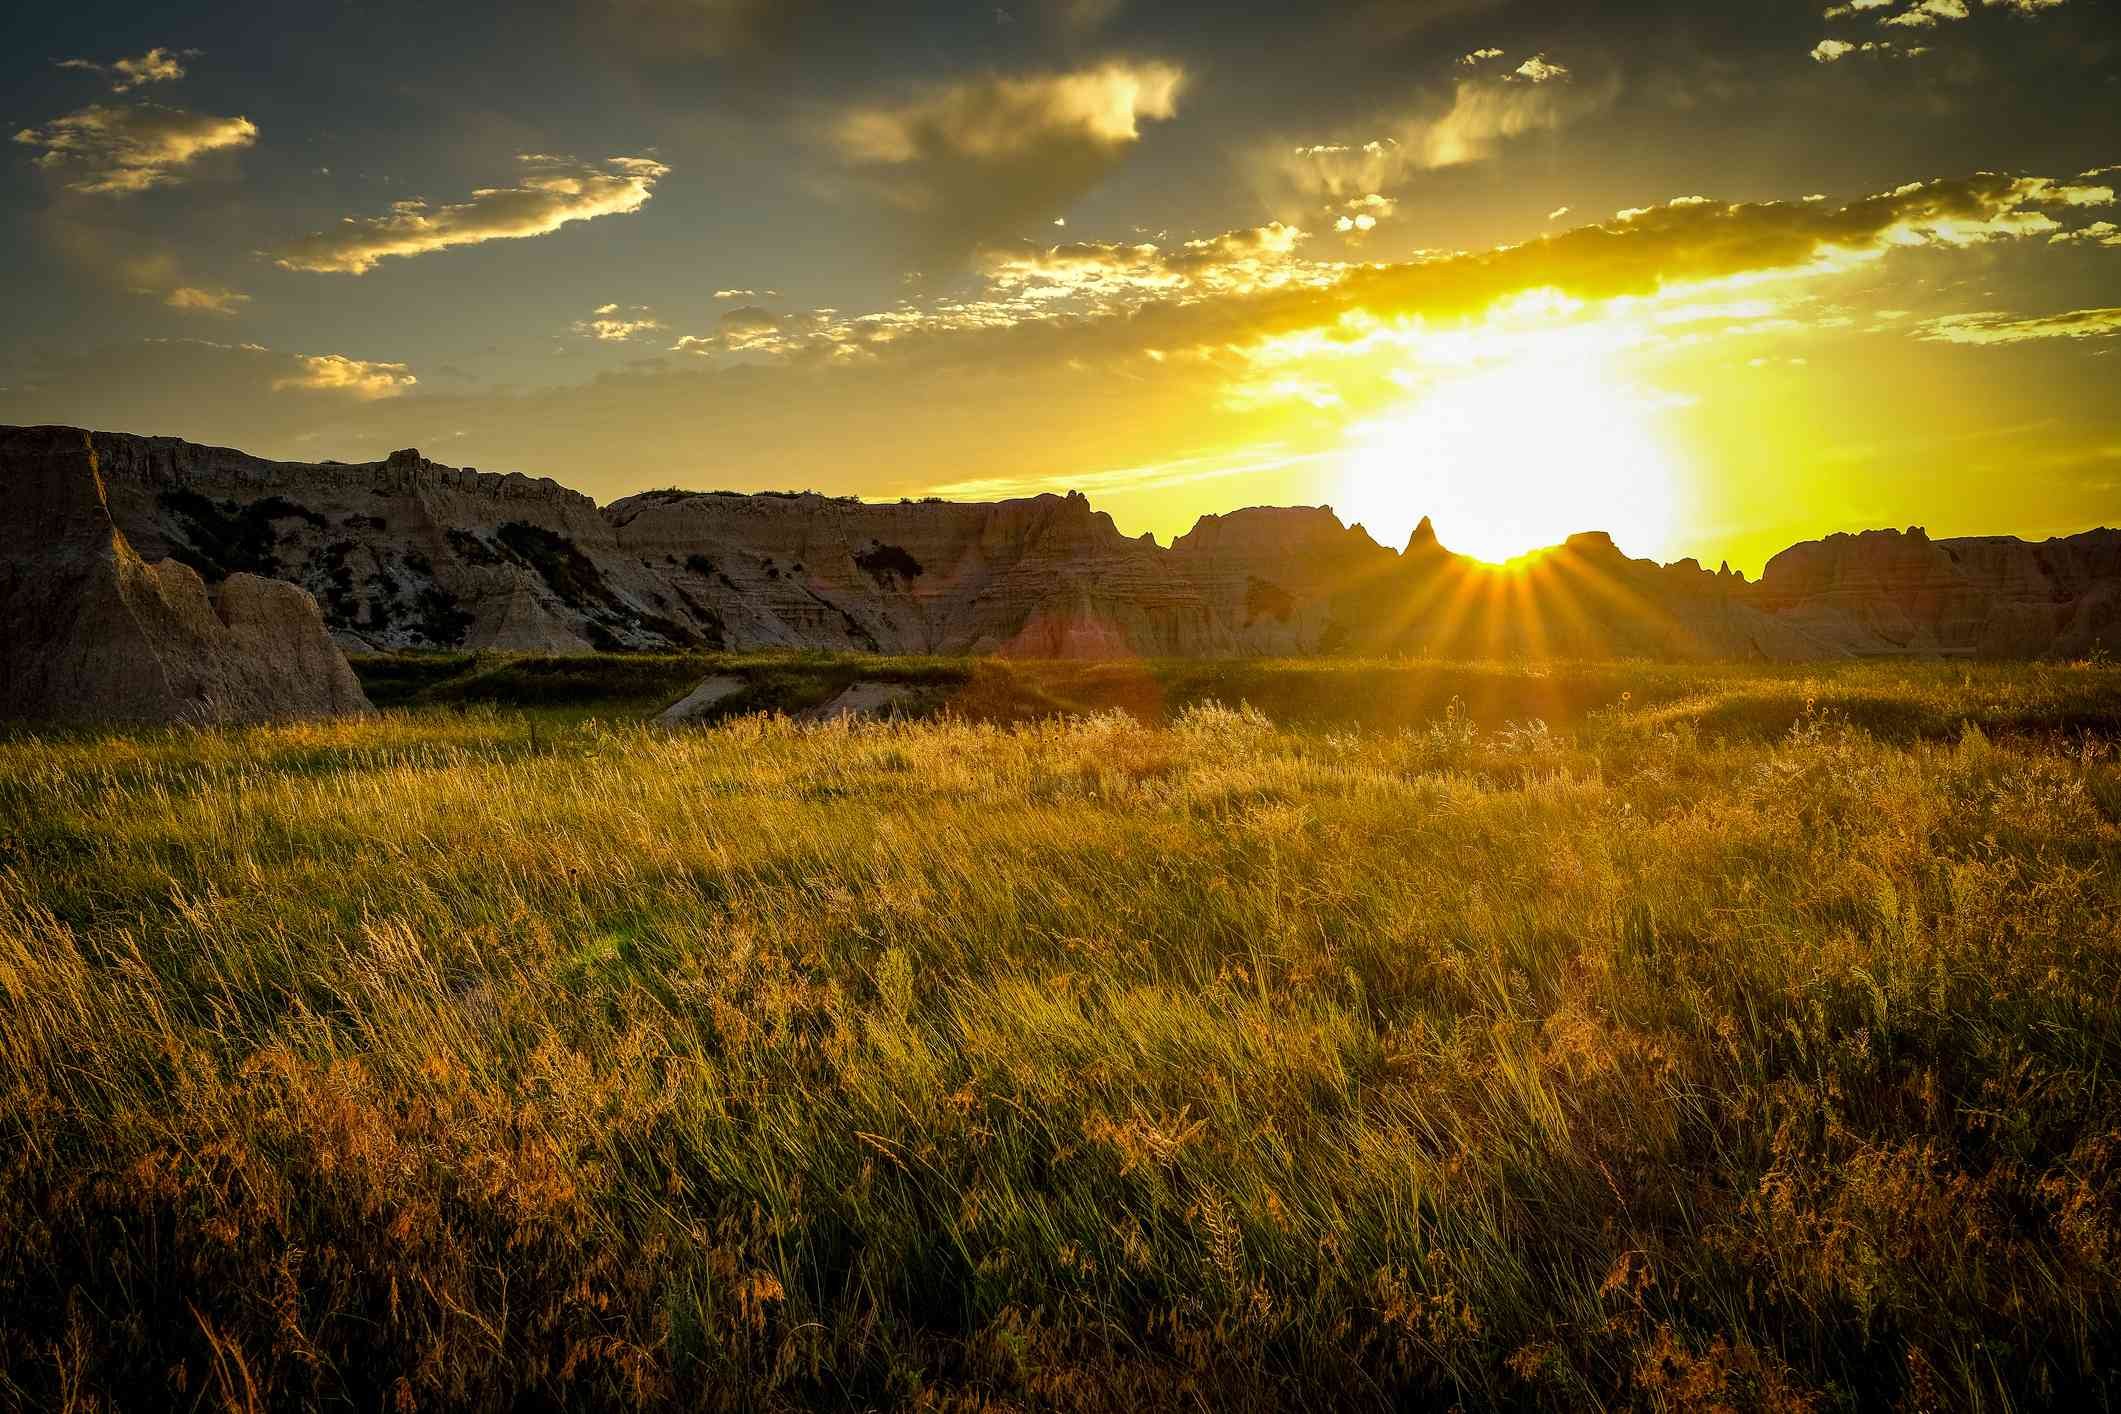 sunrise over Badlands National Park with mountains in the distance